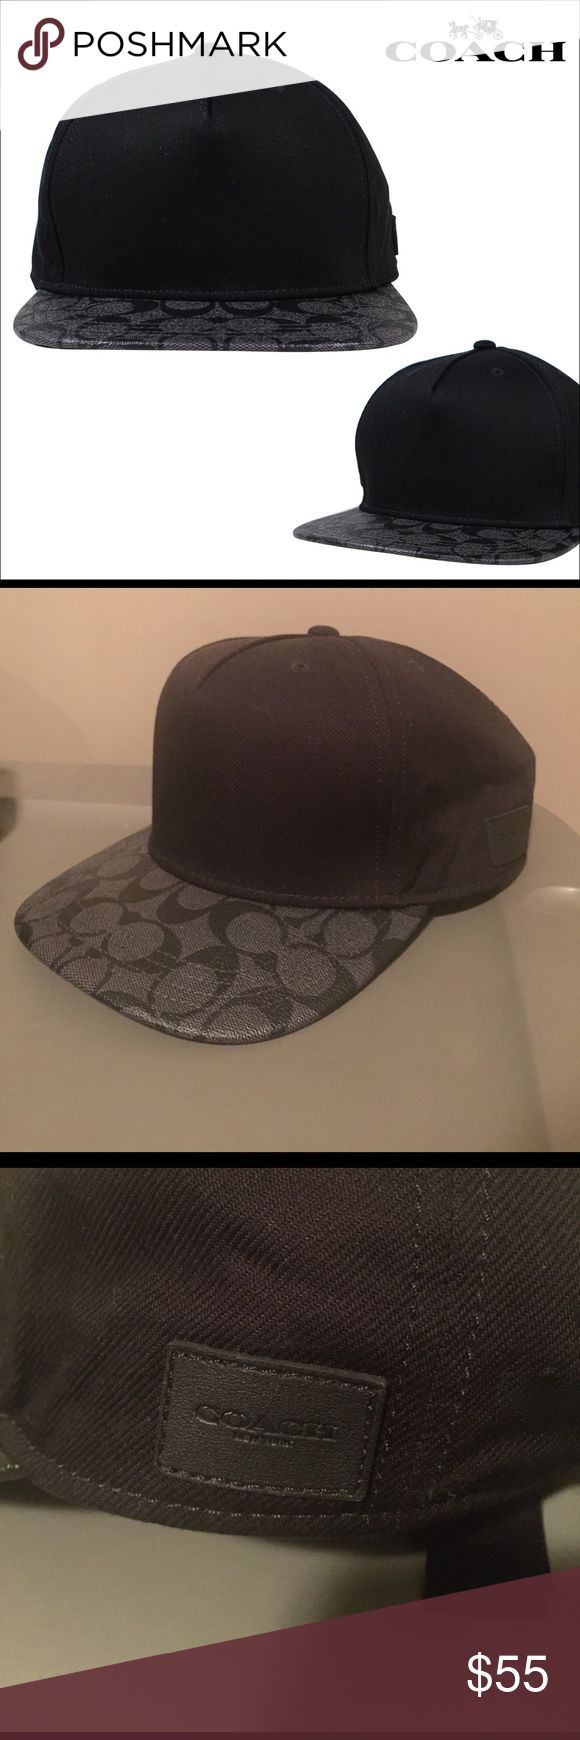 Coach Hat Like New. Black, Authentic Mens Coach Hat with leather adjustable strap. Never wore it out of the house. Coach Accessories Hats